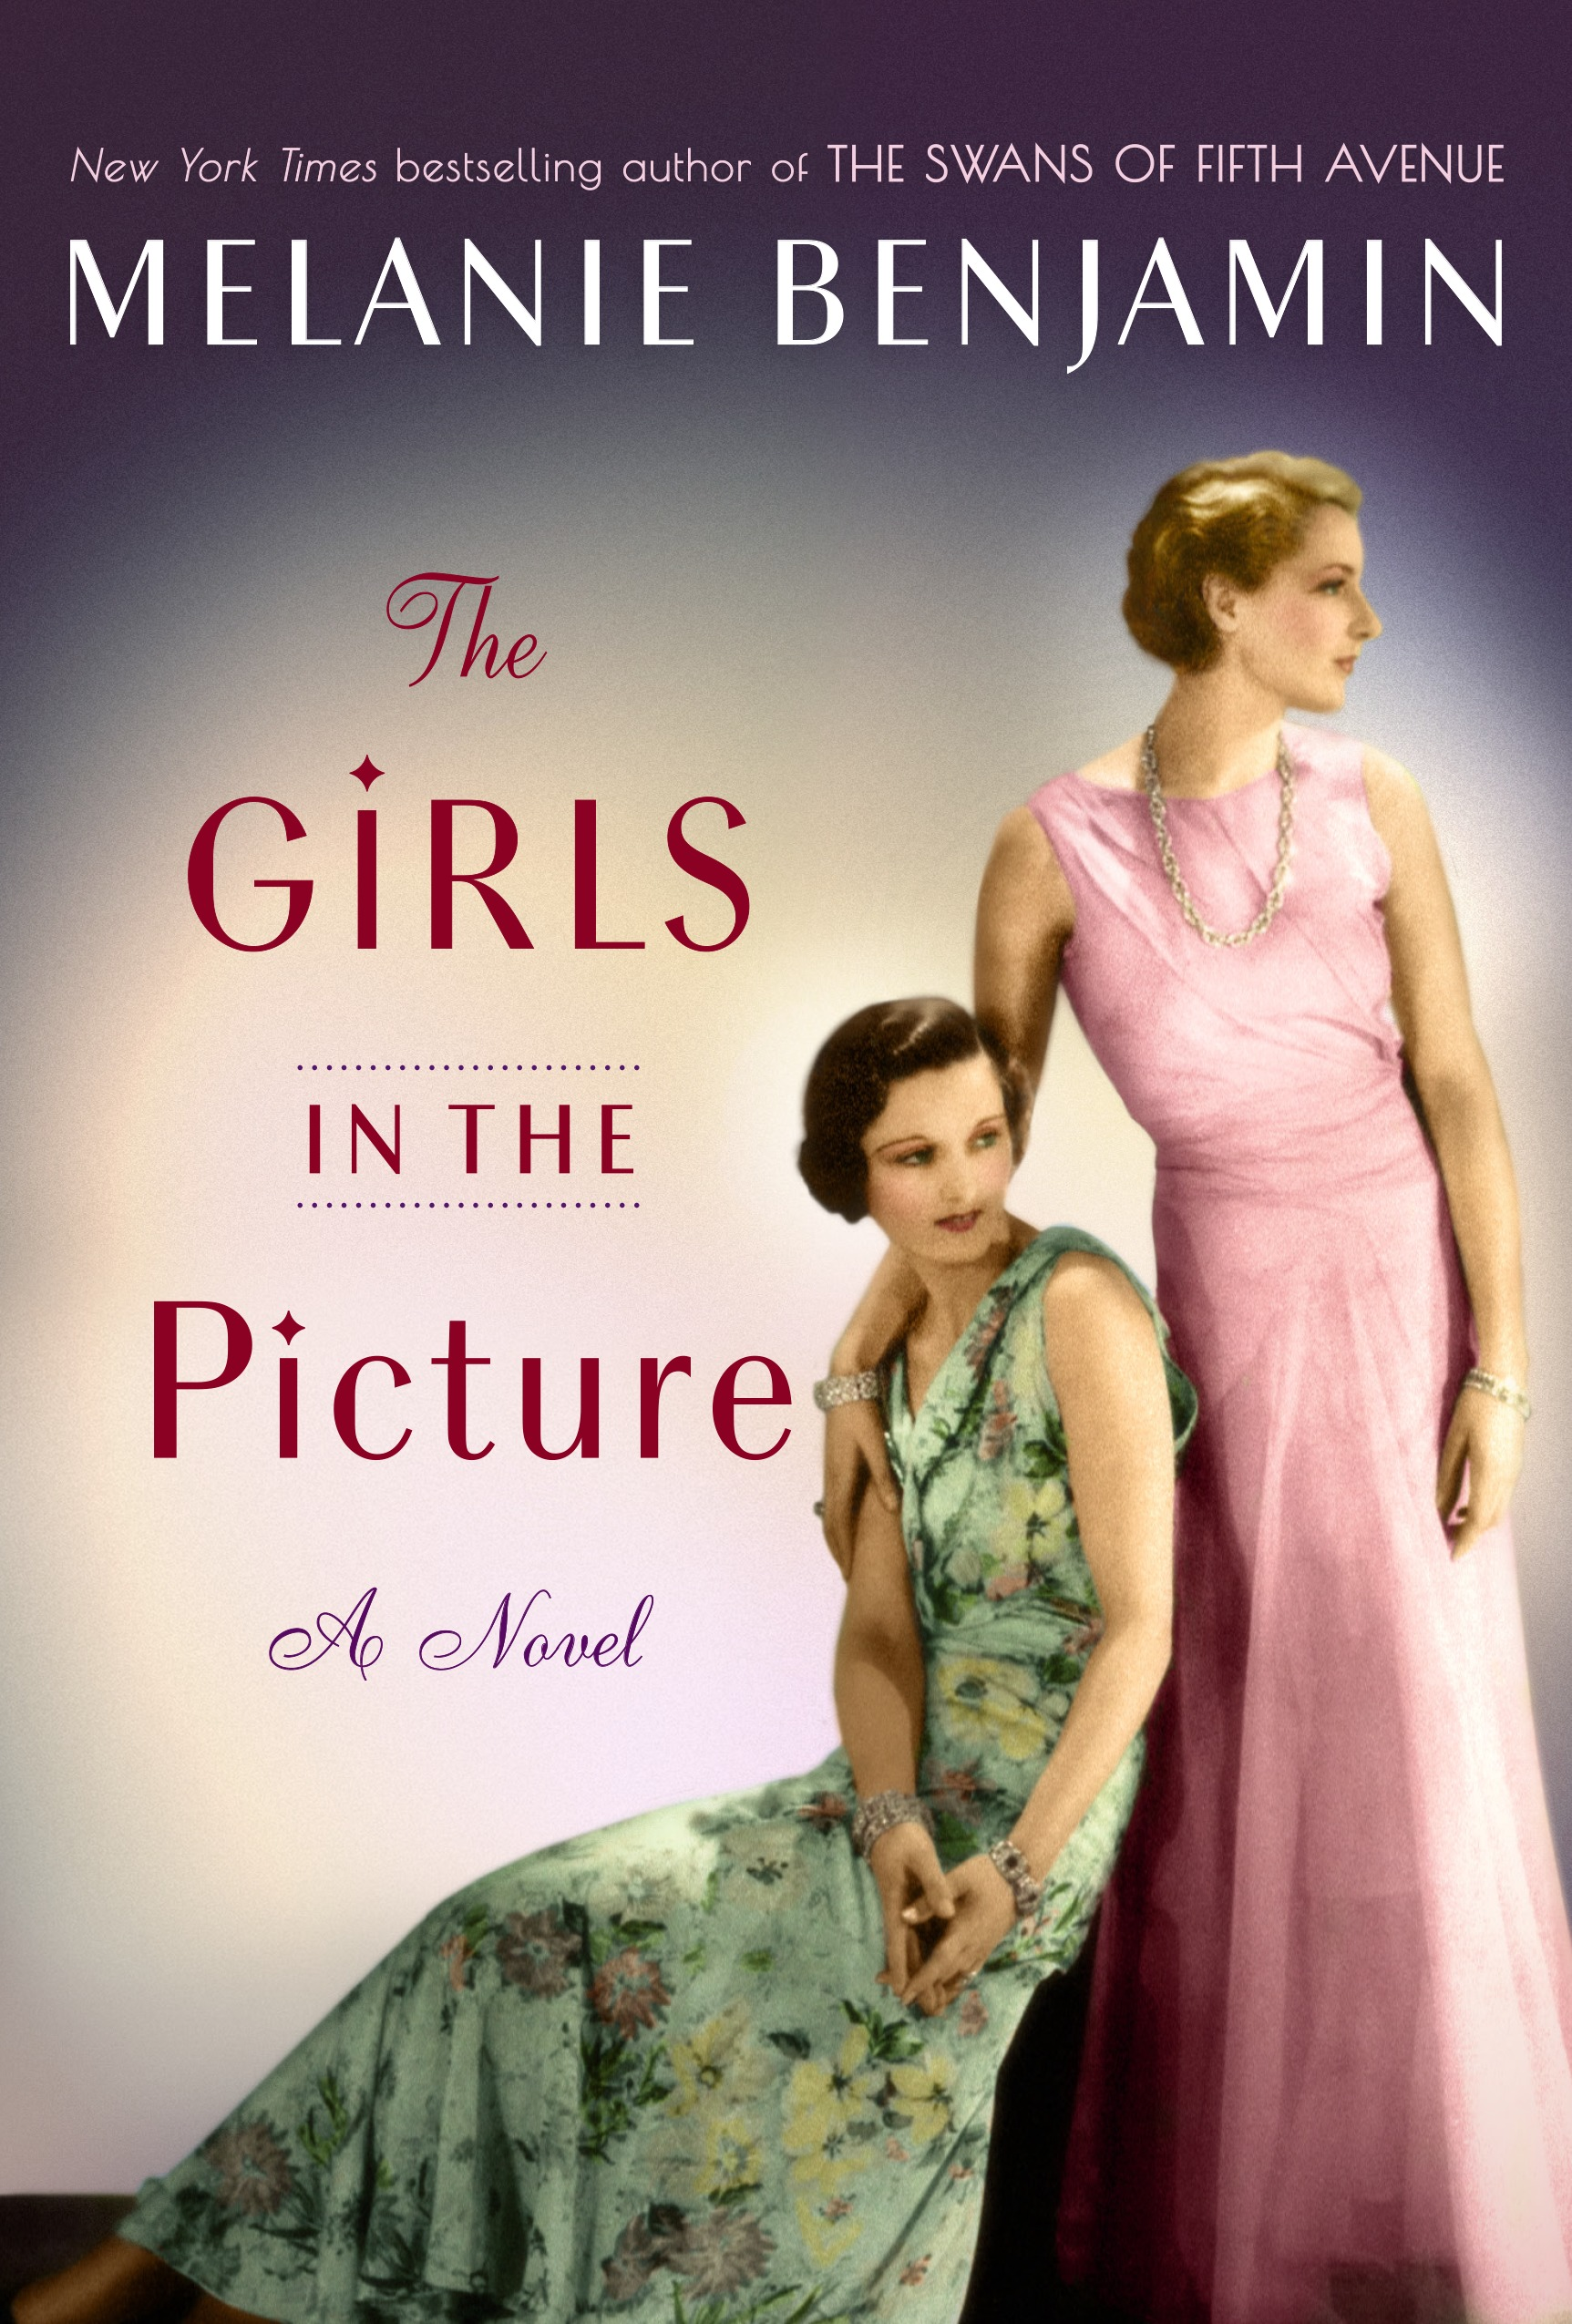 Friends of the SMU Libraries present Melanie Benjamin and THE GIRLS IN THE PICTURE